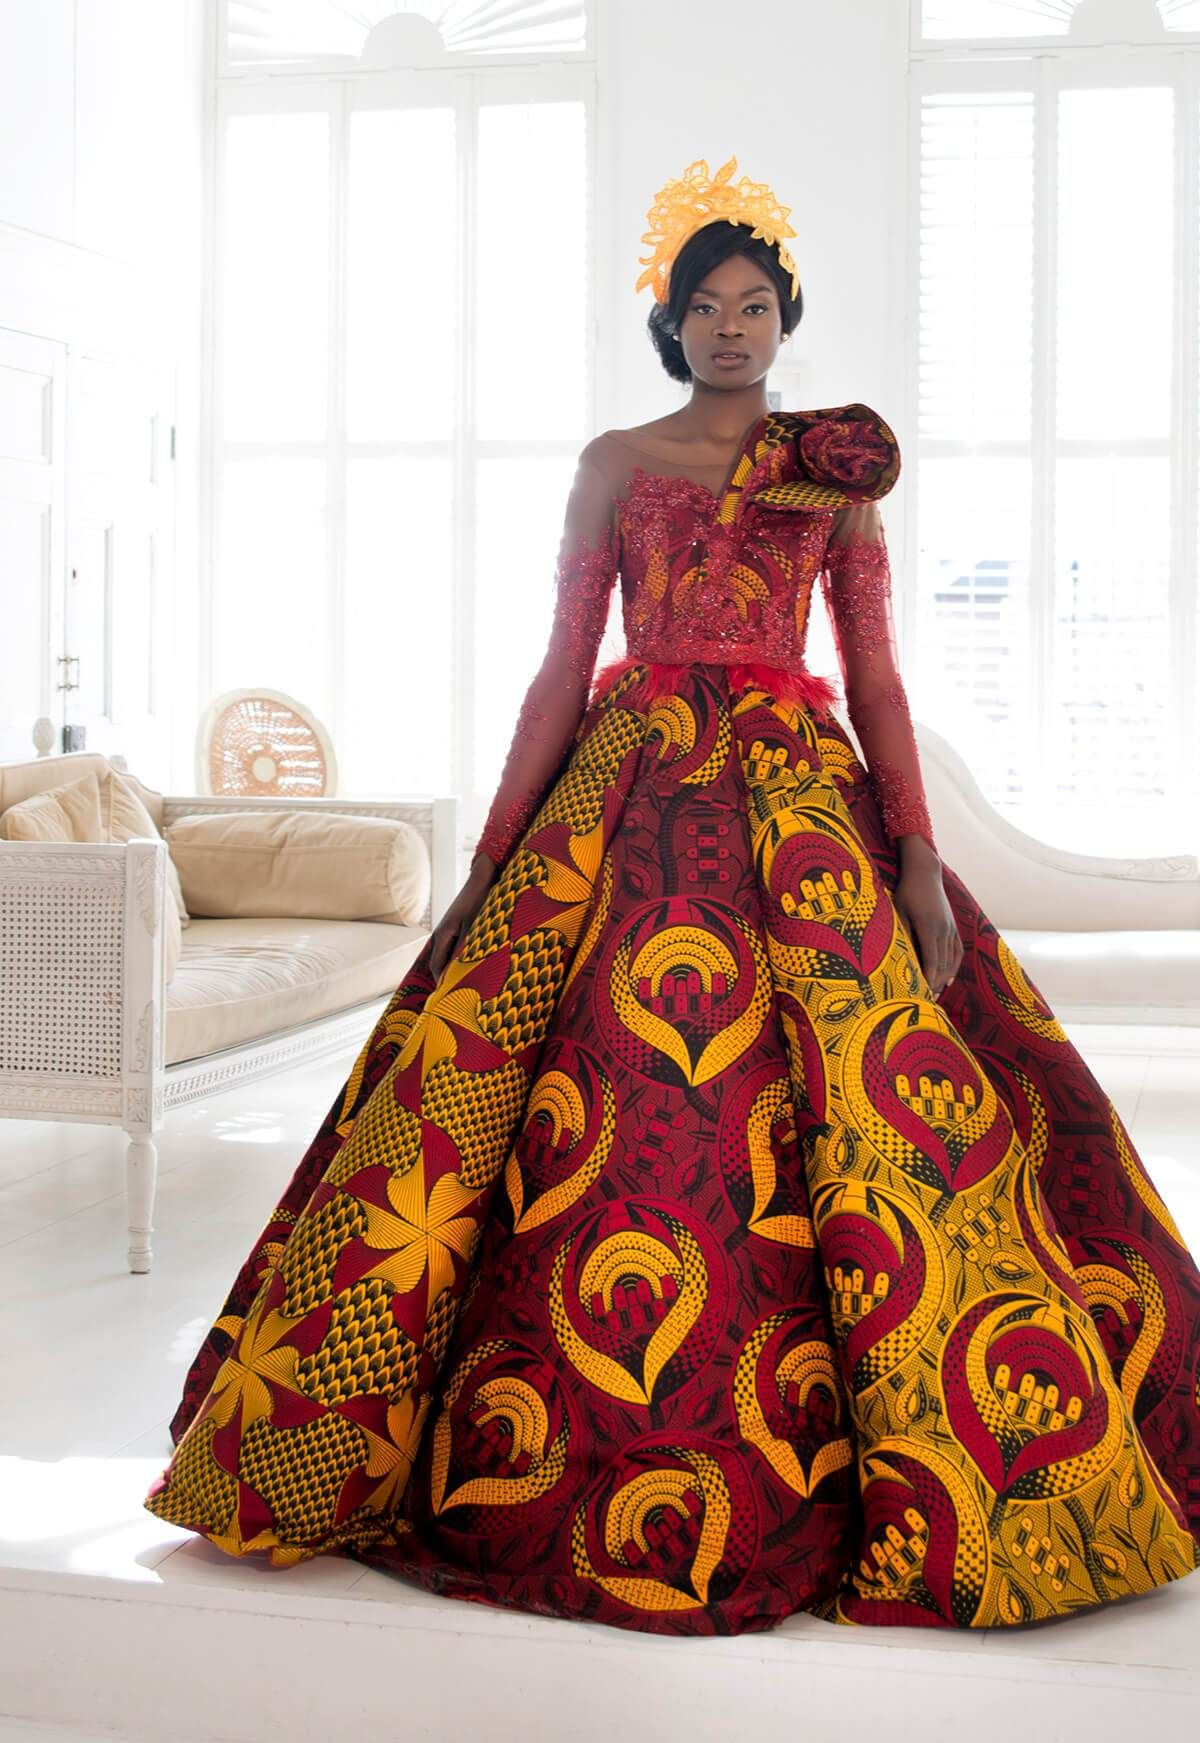 African Wedding Dresses By Vlisco Become A Unforgettable Bride African Print Patterns African Fashion Dresses African Wedding Attire African Wedding Dress